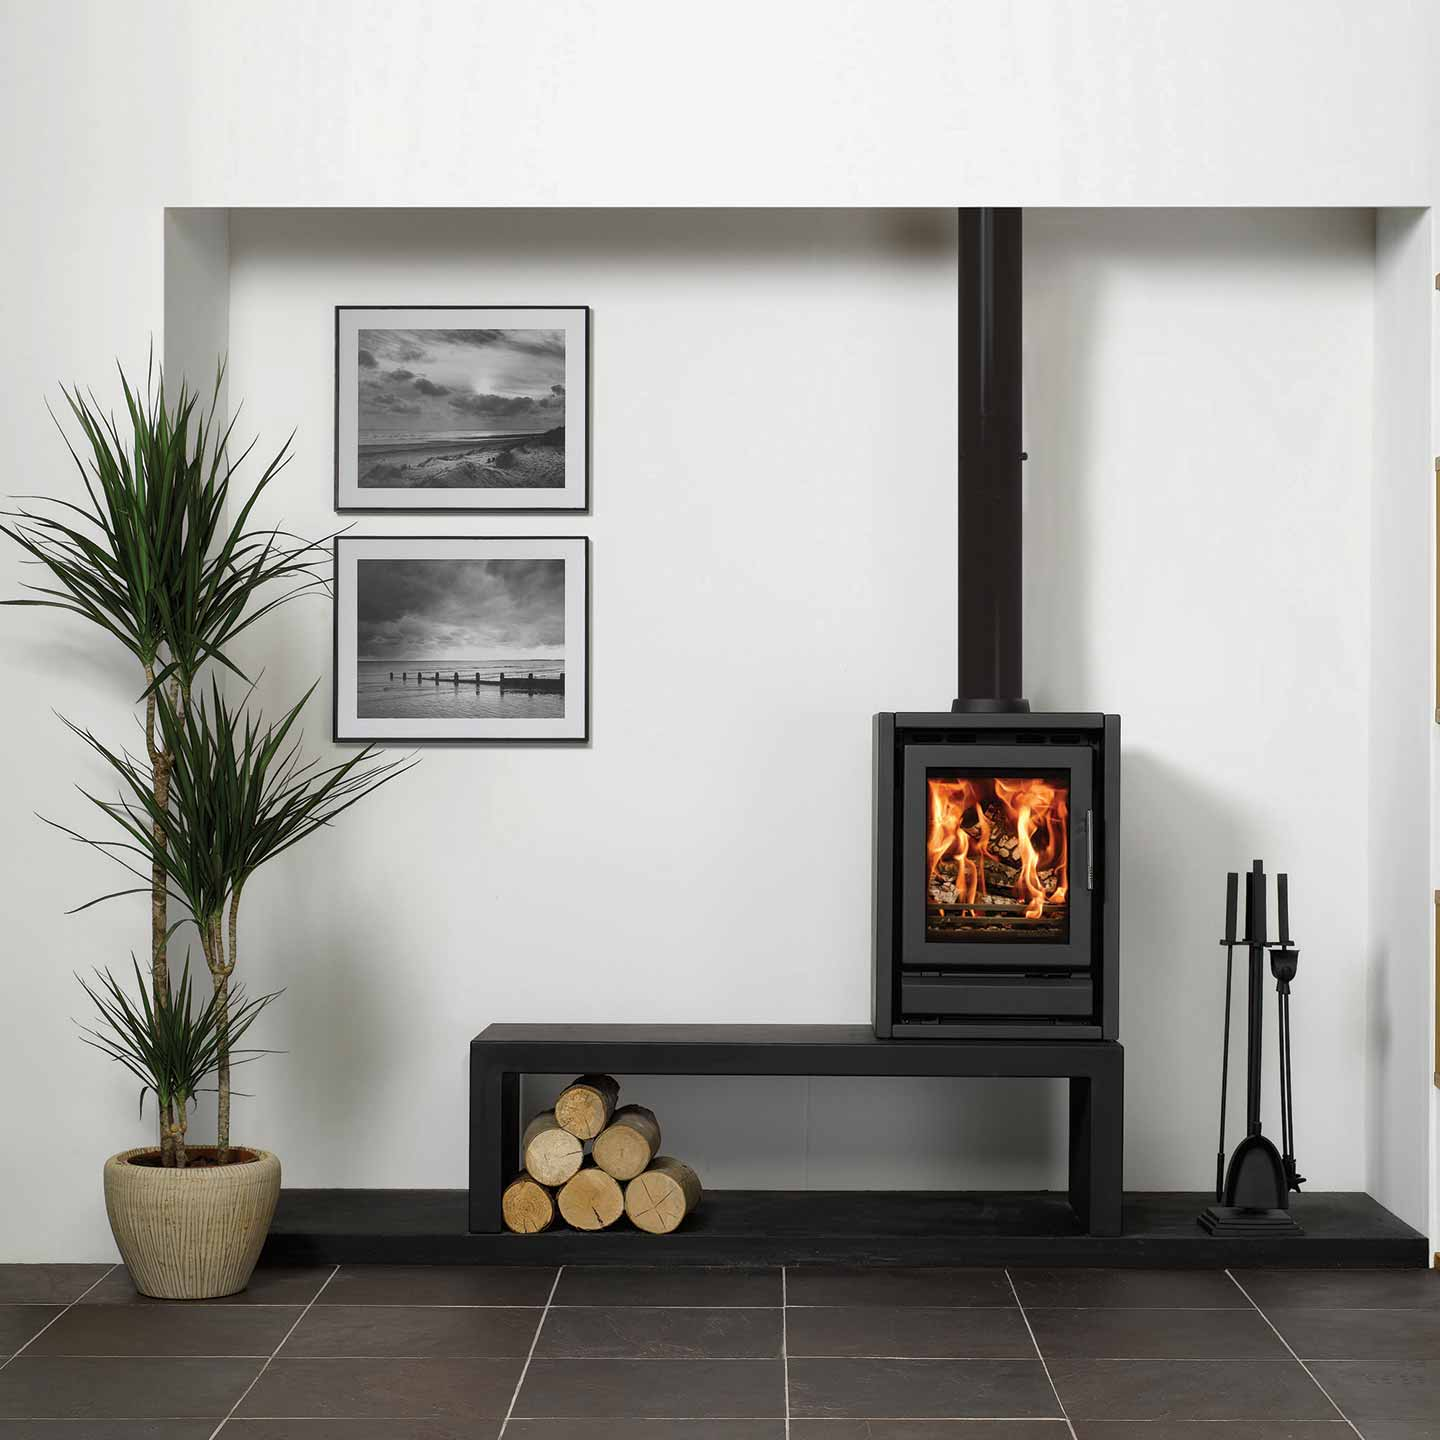 free freestanding fireplaces standing gas fireplace stove products wood archgard stoves burning